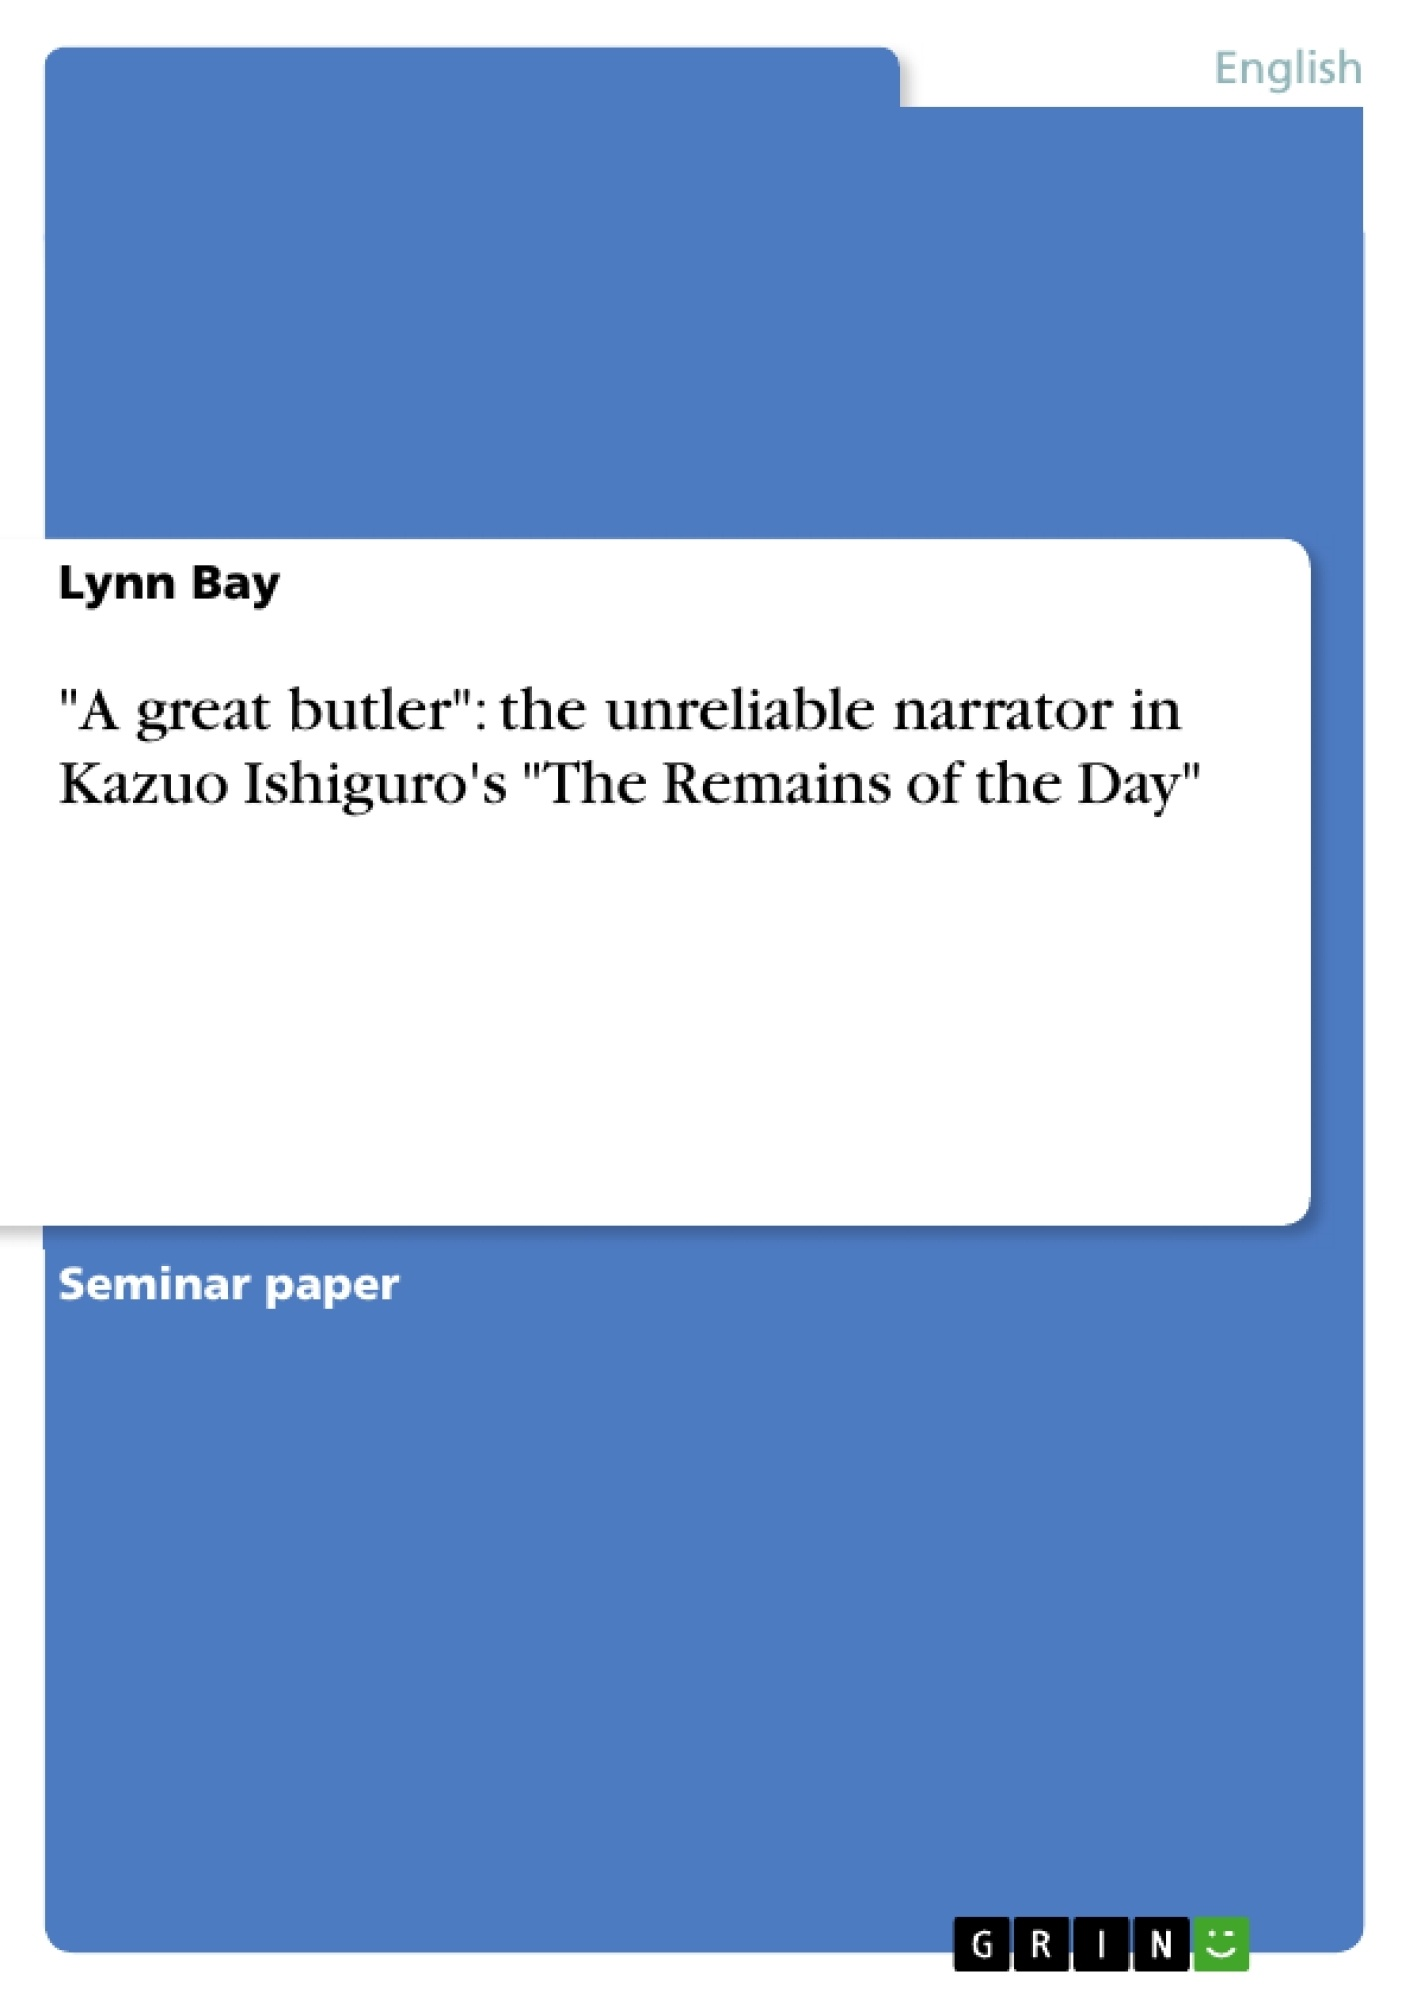 """Title: """"A great butler"""": the unreliable narrator in Kazuo Ishiguro's """"The Remains of the Day"""""""